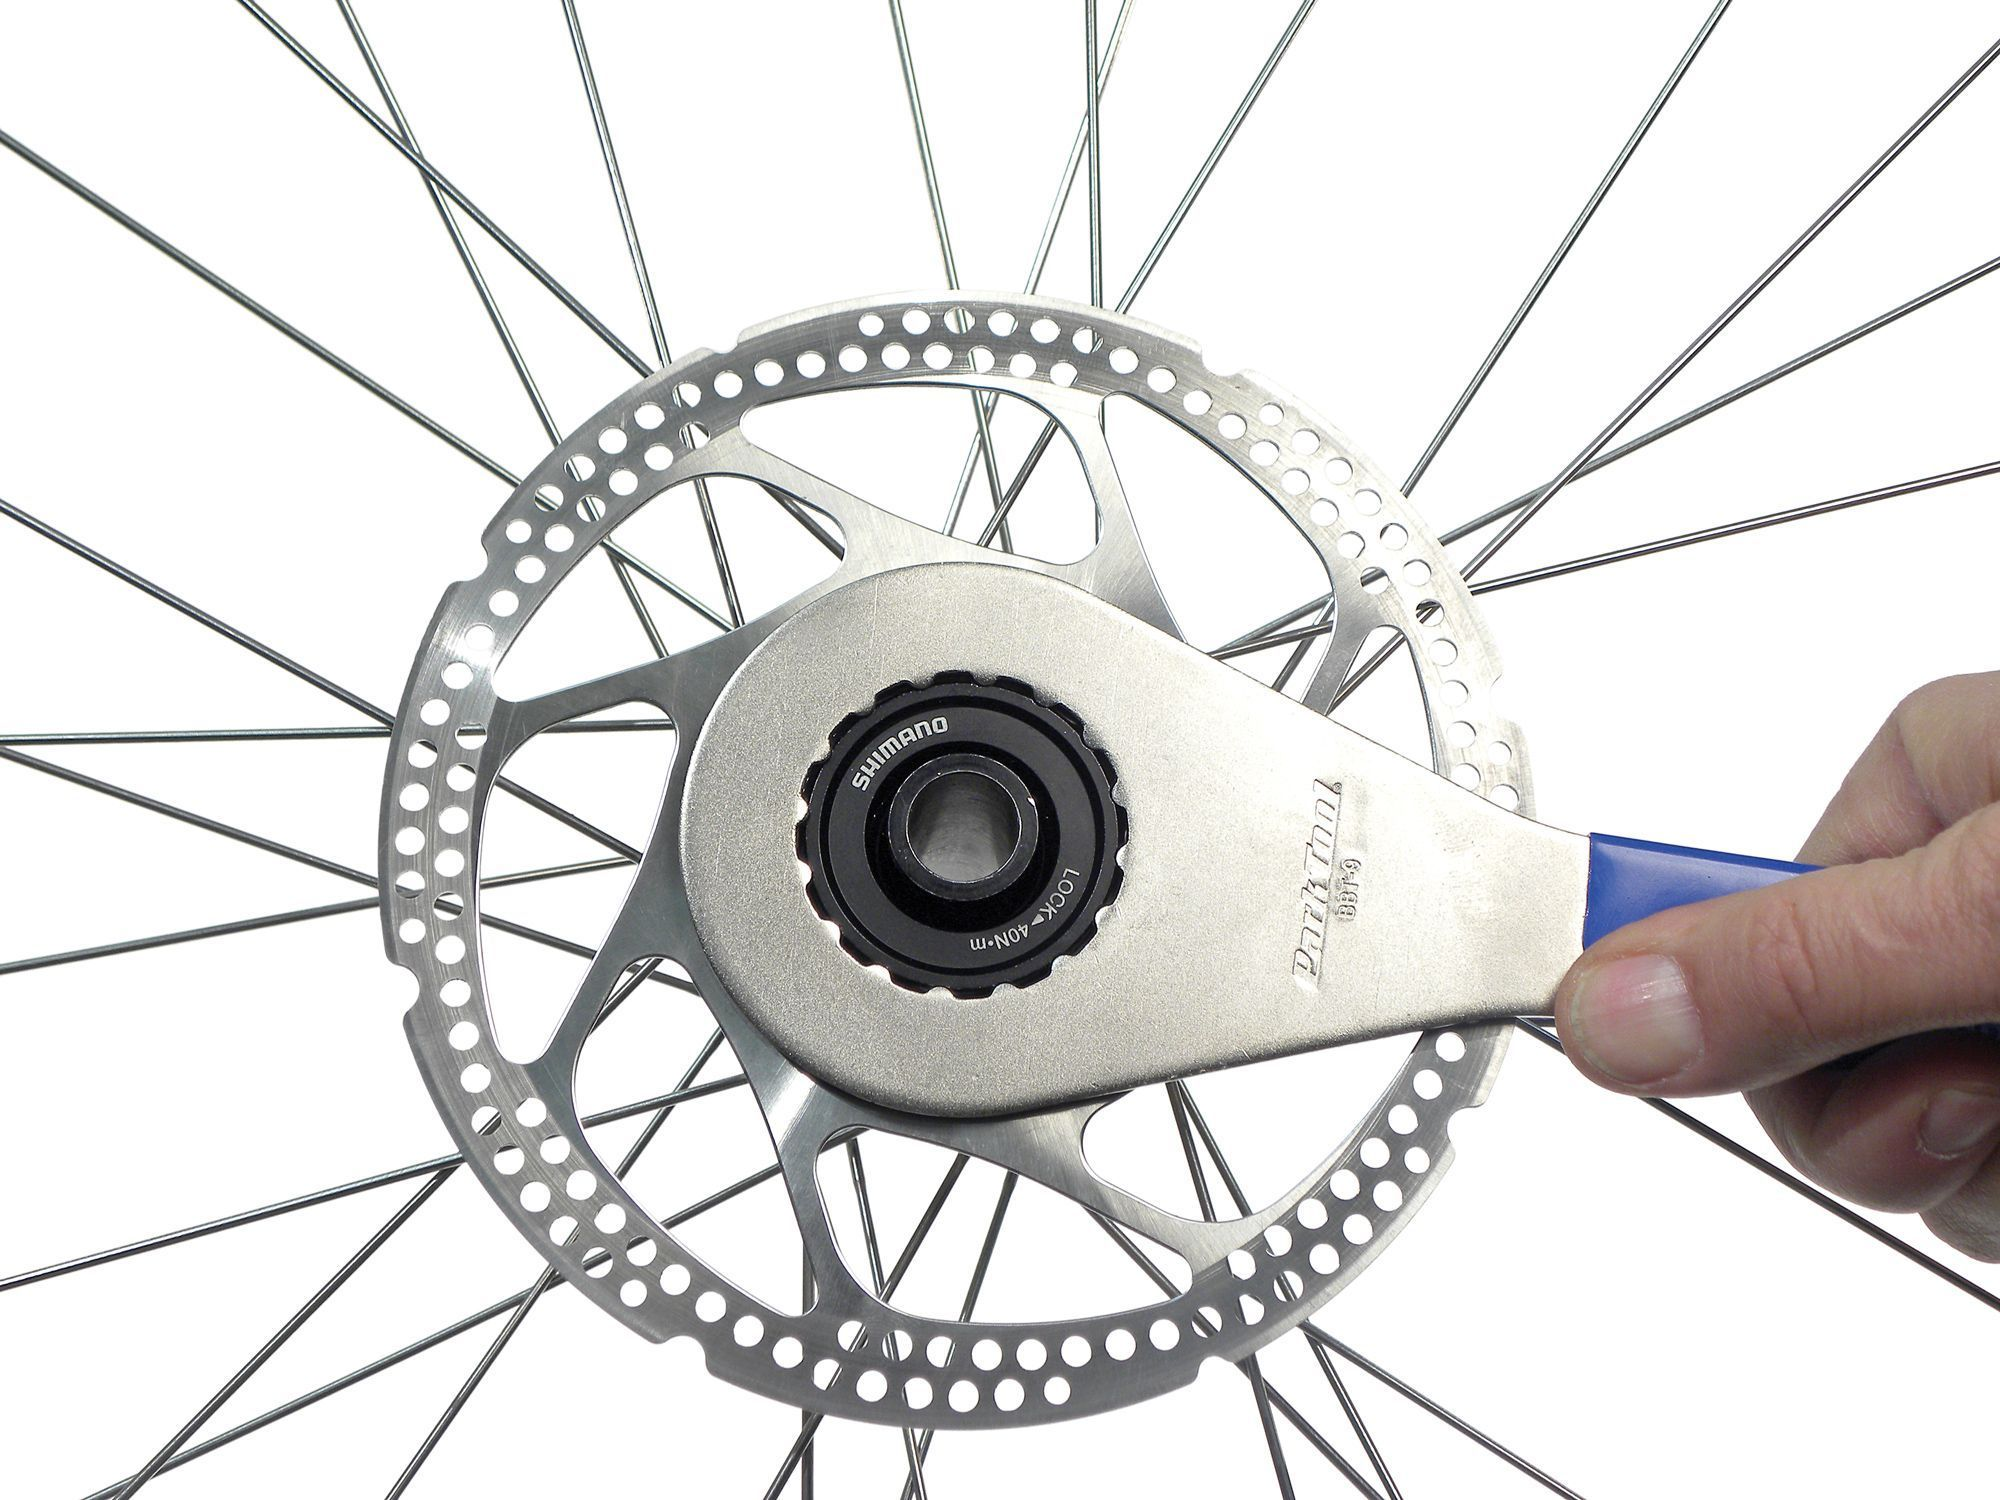 How To Install Disc Brake Rotor Bike Repair Bicycle Safety